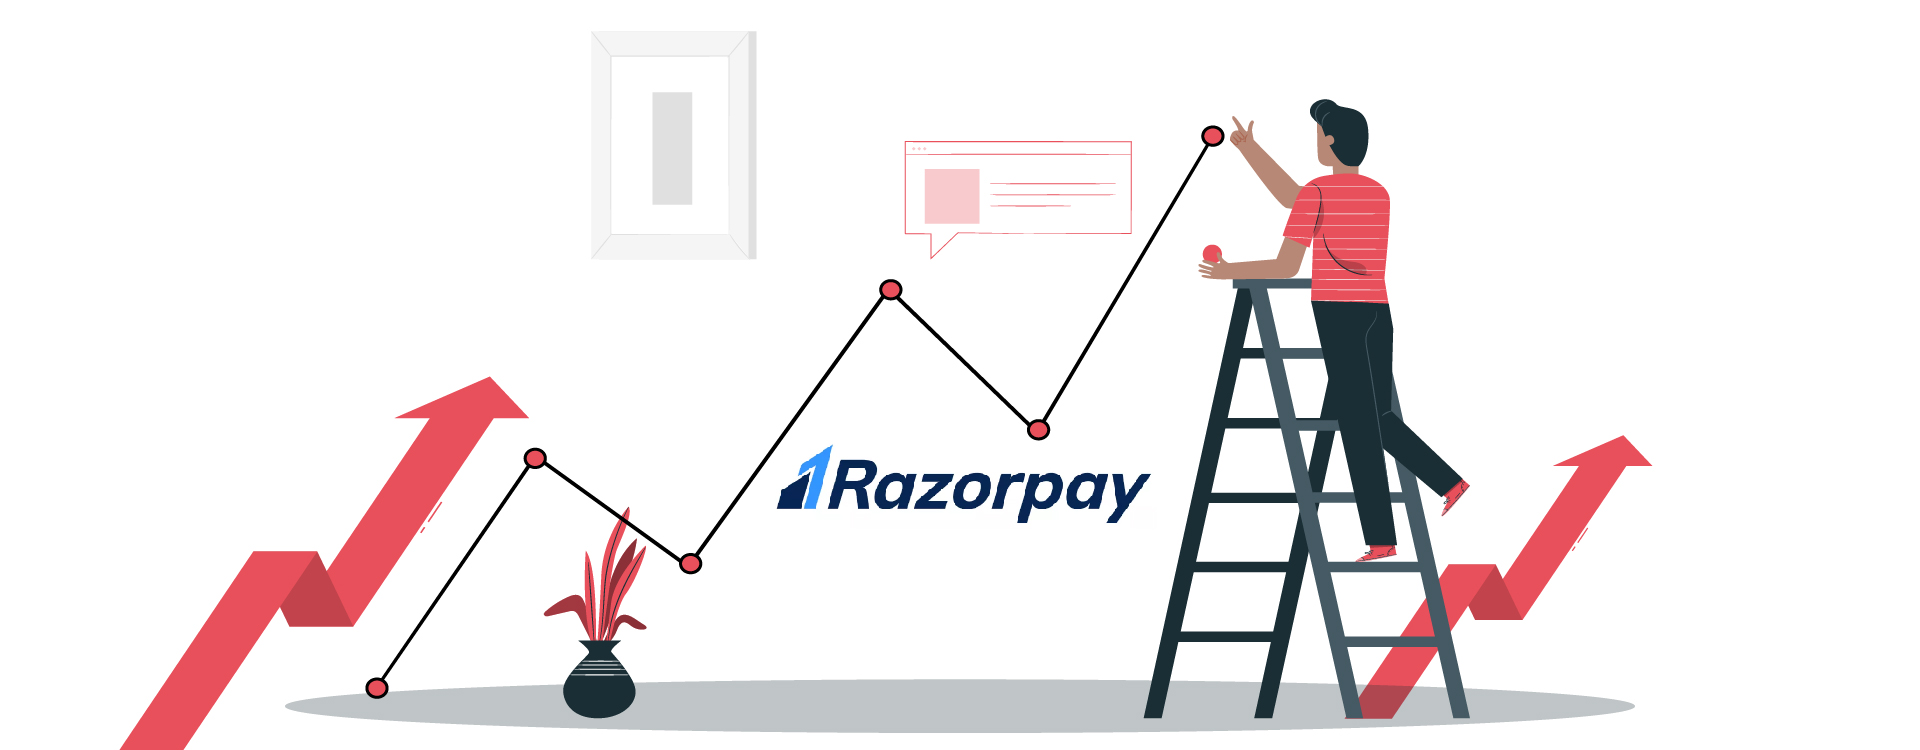 Razorpay Payment Gateway Has Expansion Plans for 2021